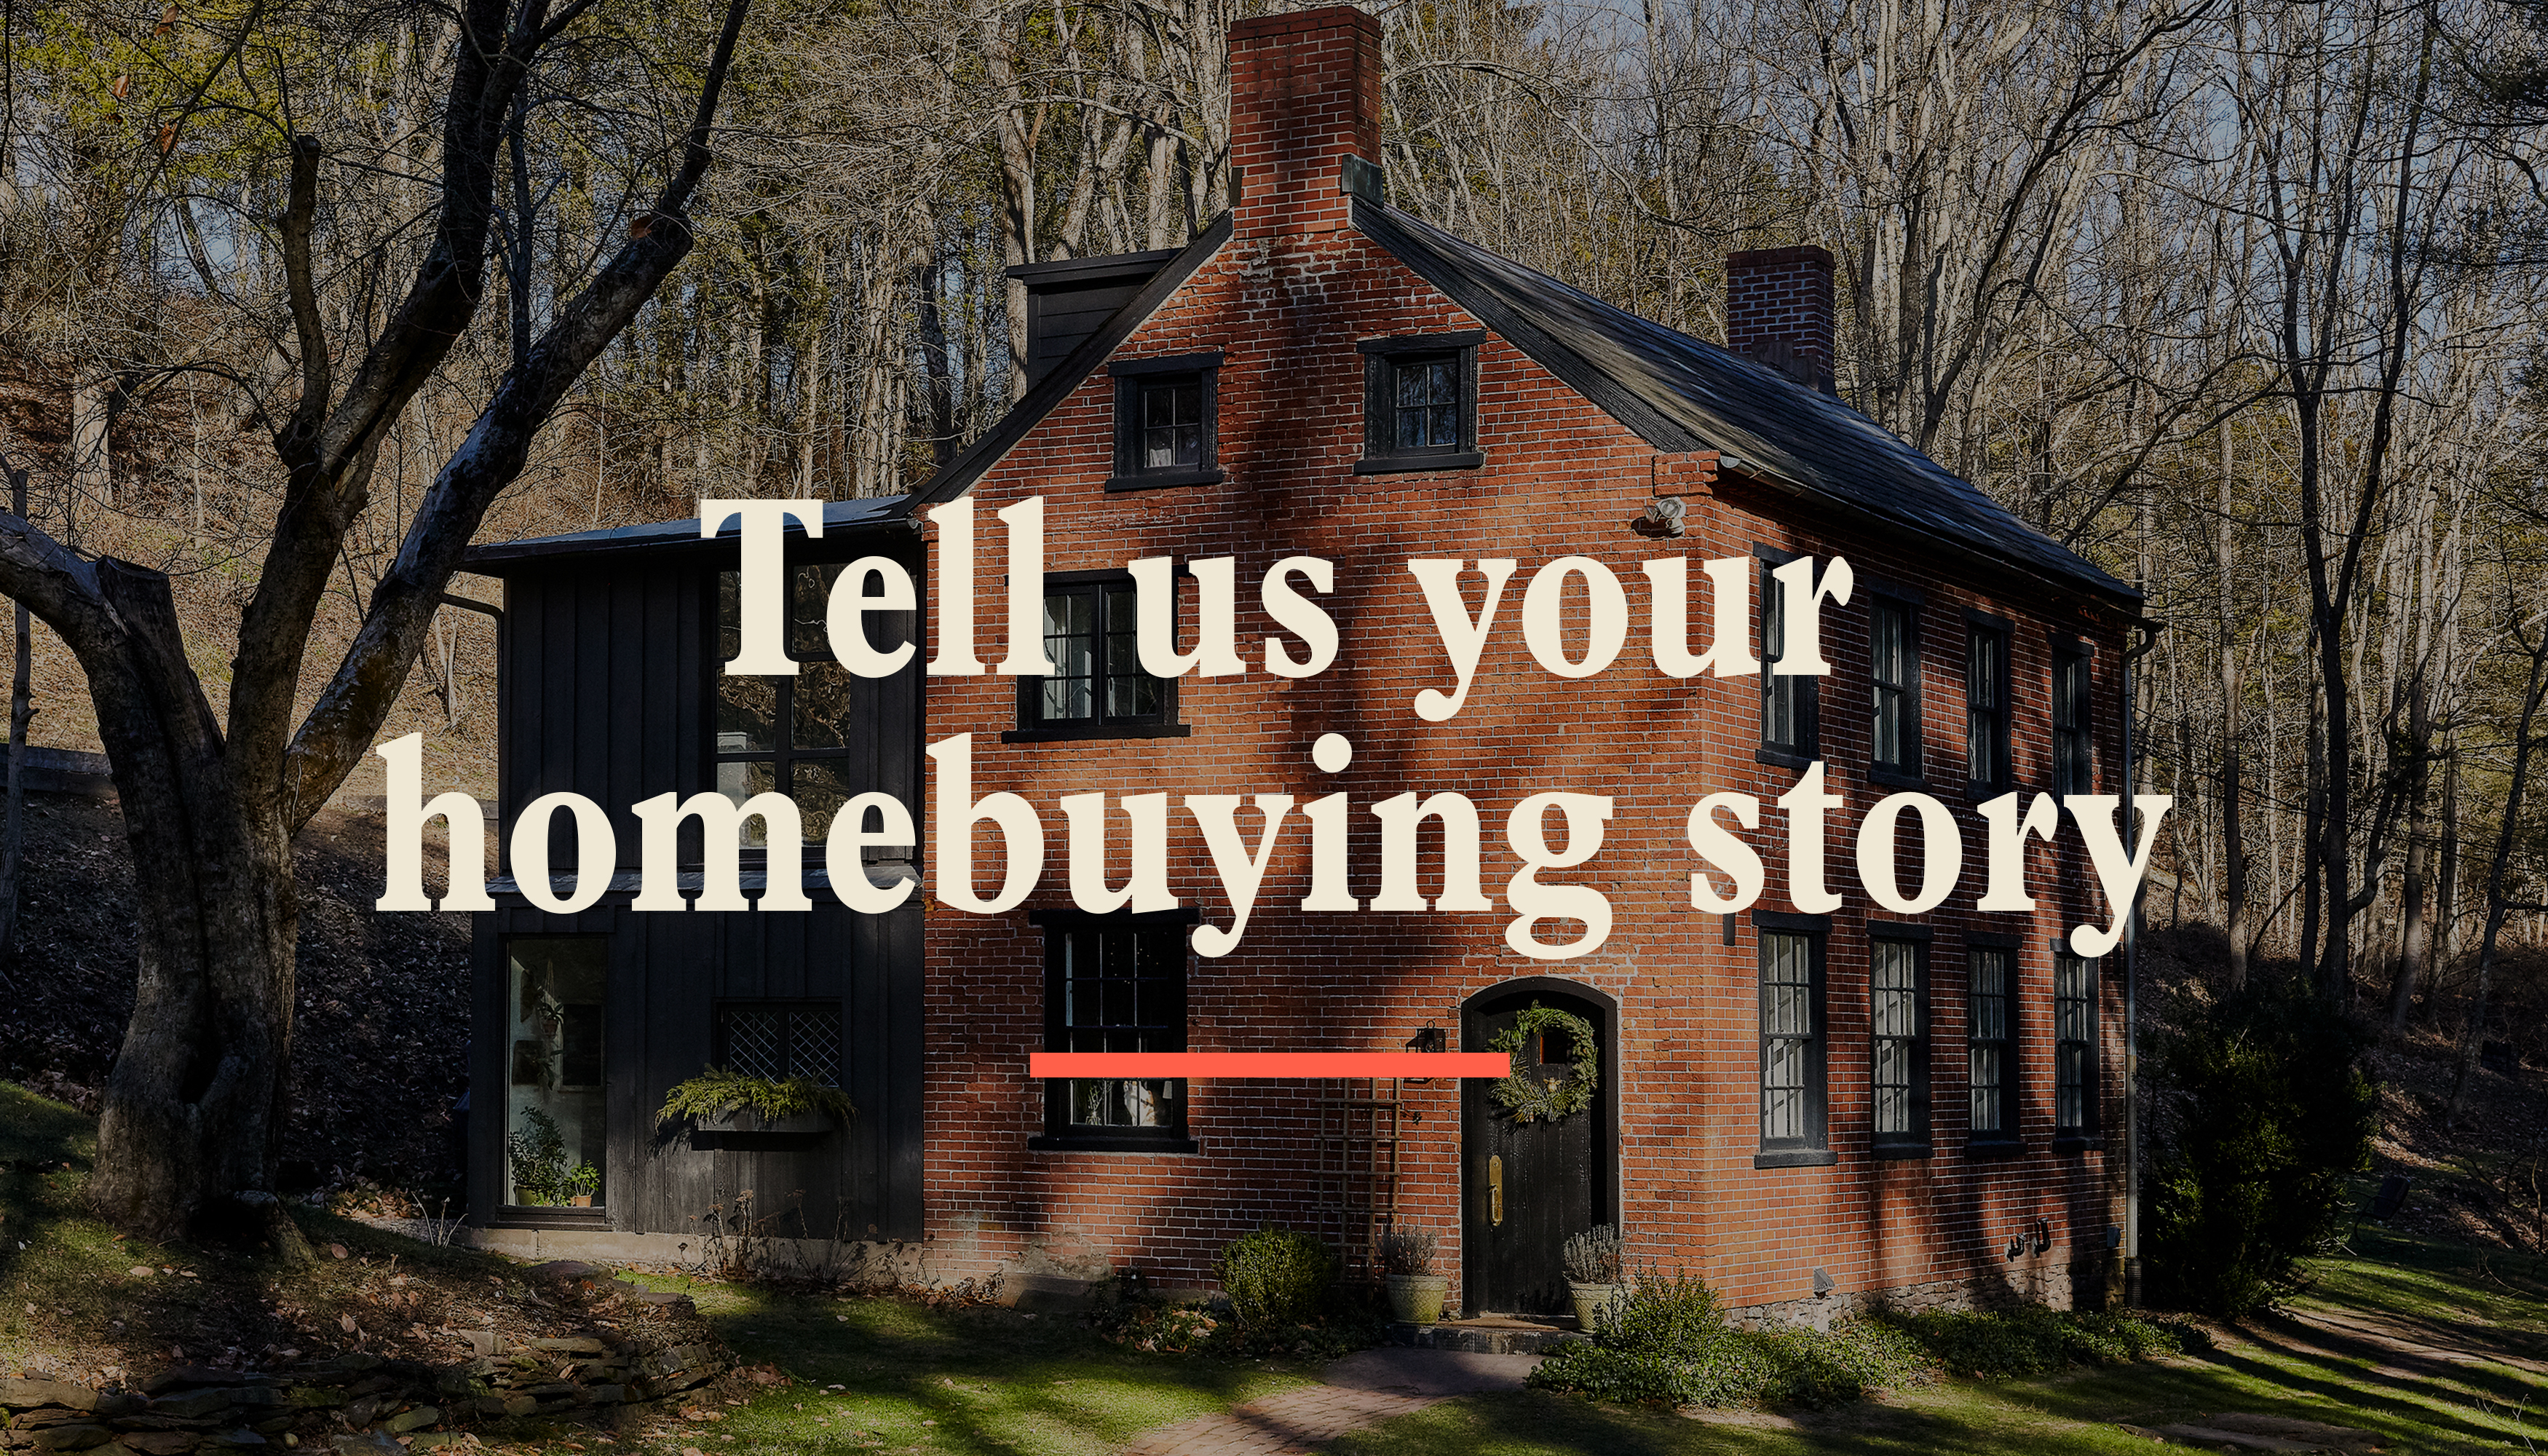 Curbed wants to hear your homebuying story